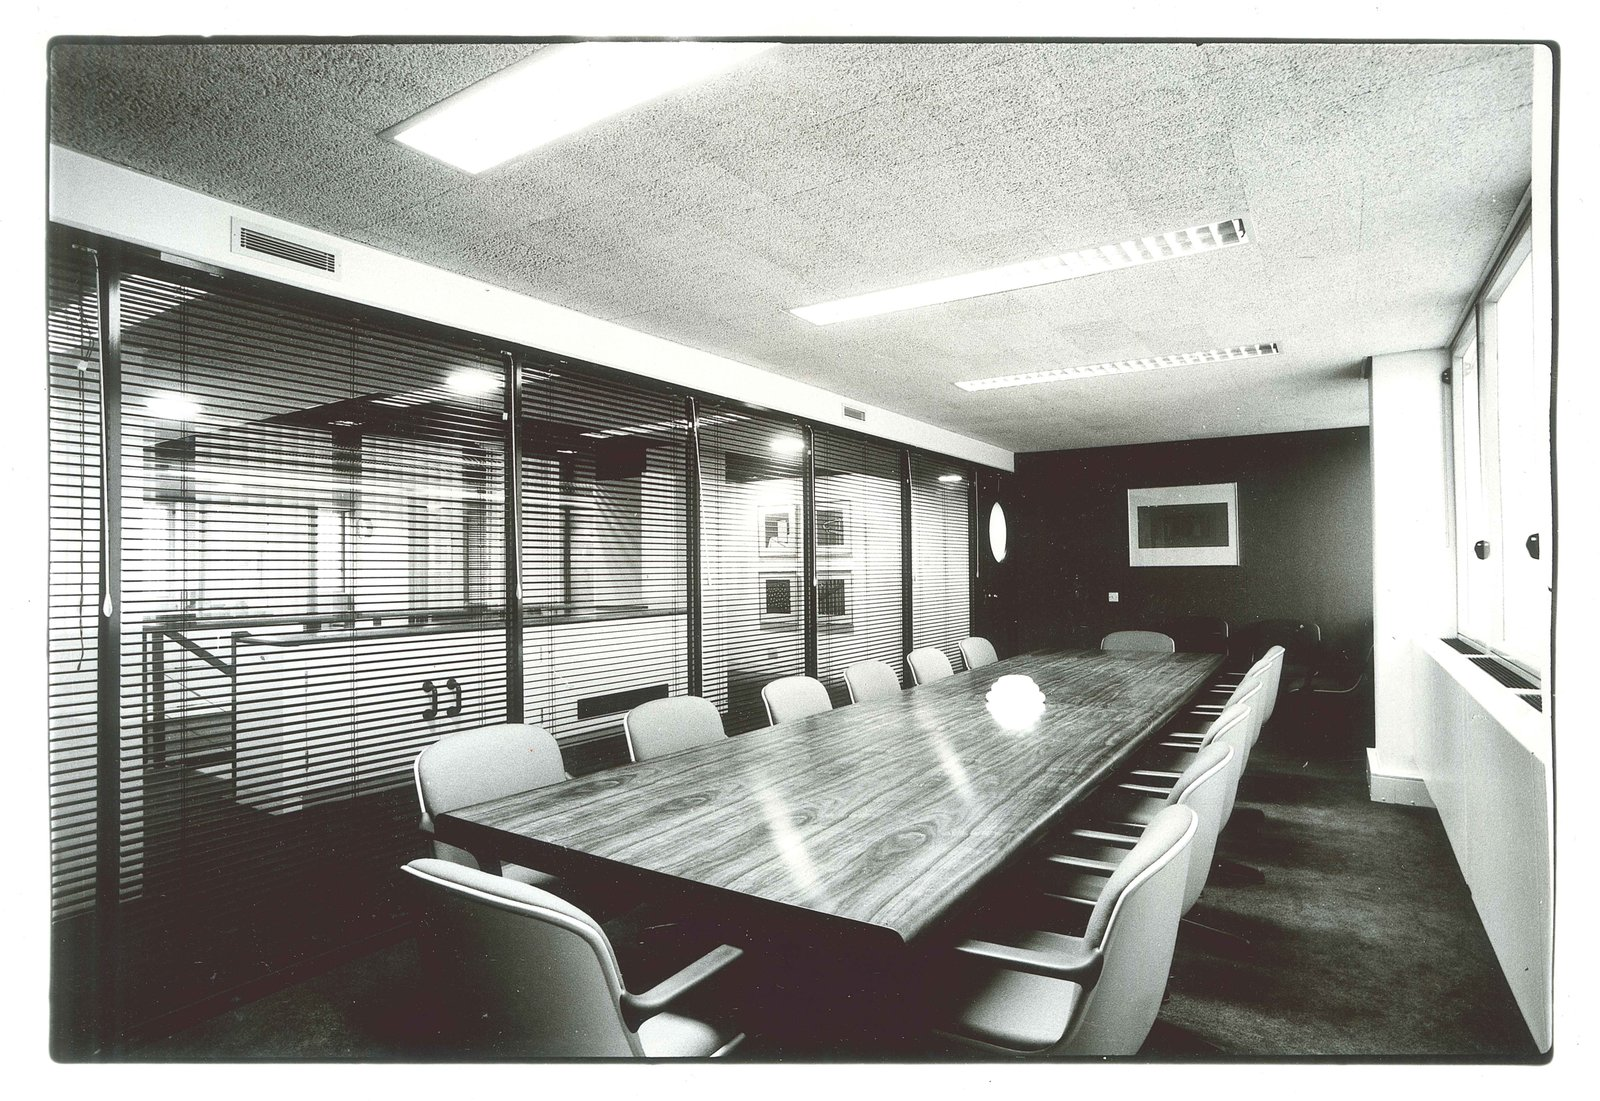 Booker McConnell Head Office  Completed in 1980, this interior overhaul was one of many Zeev Aram & Associates interior design projects.  Office by RGA lLP from ARAM at 50: Golden Anniversary for a London Design Icon